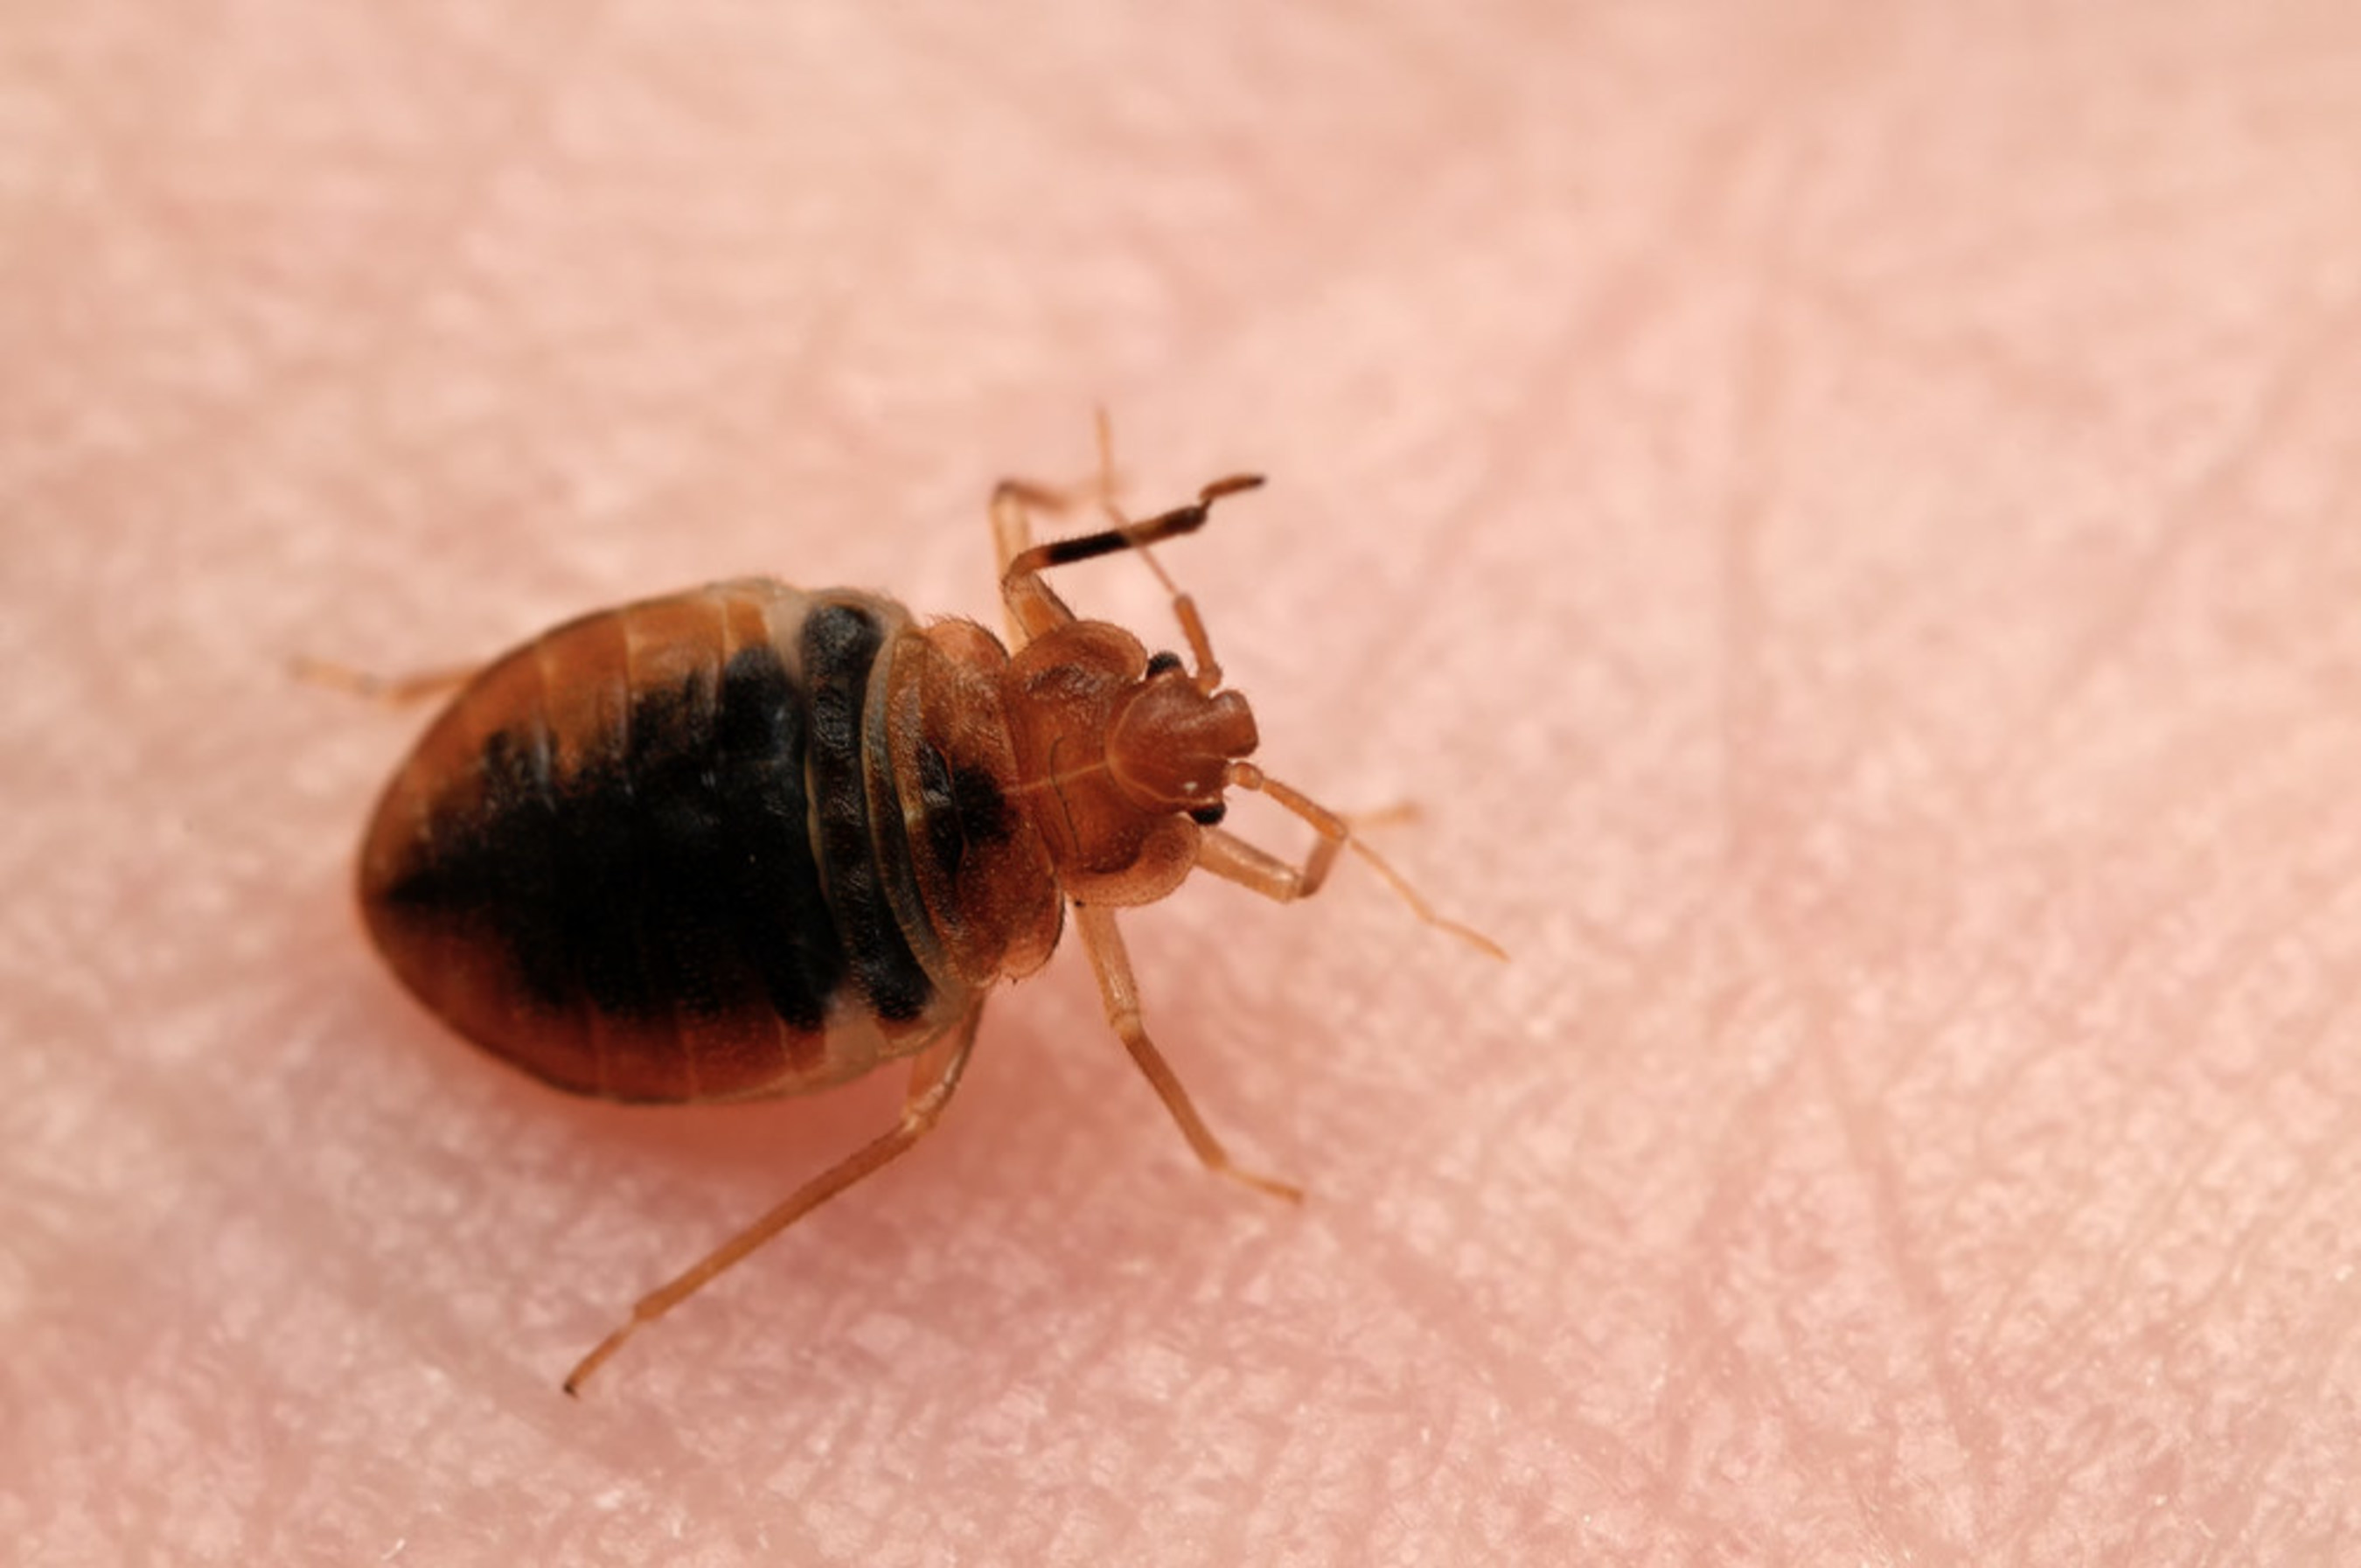 Seattle Homeless Starting to Prefer Parks to Shelters Thanks to Bed Bug Issues